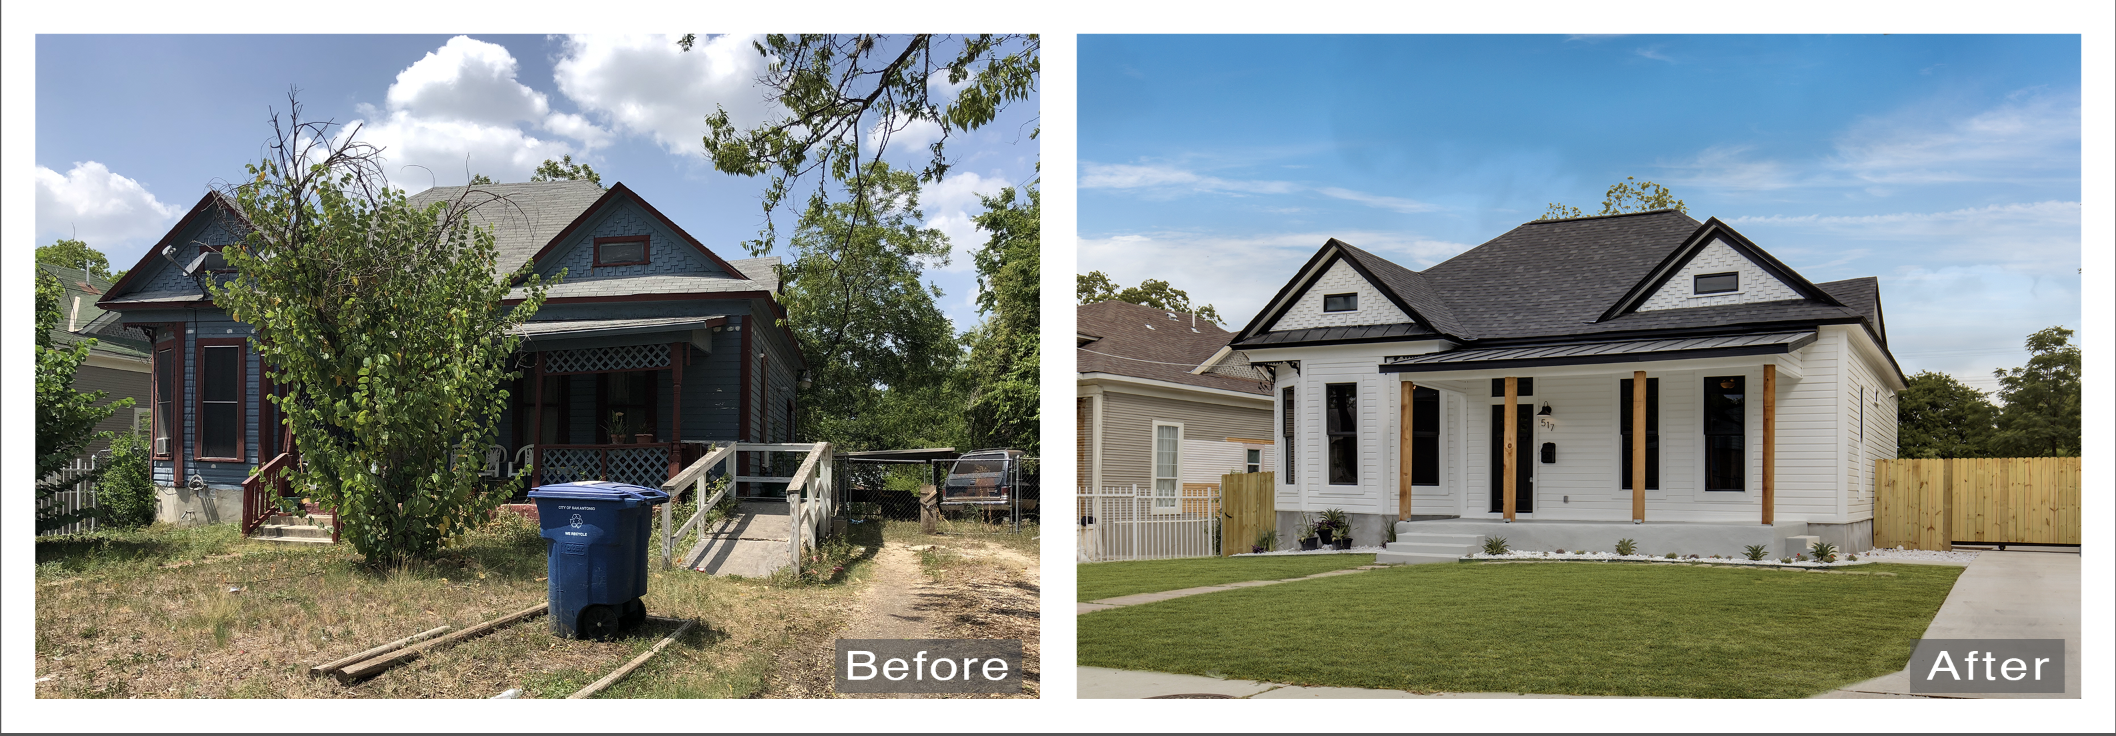 517 Burleson Before & After Exterior 1.png